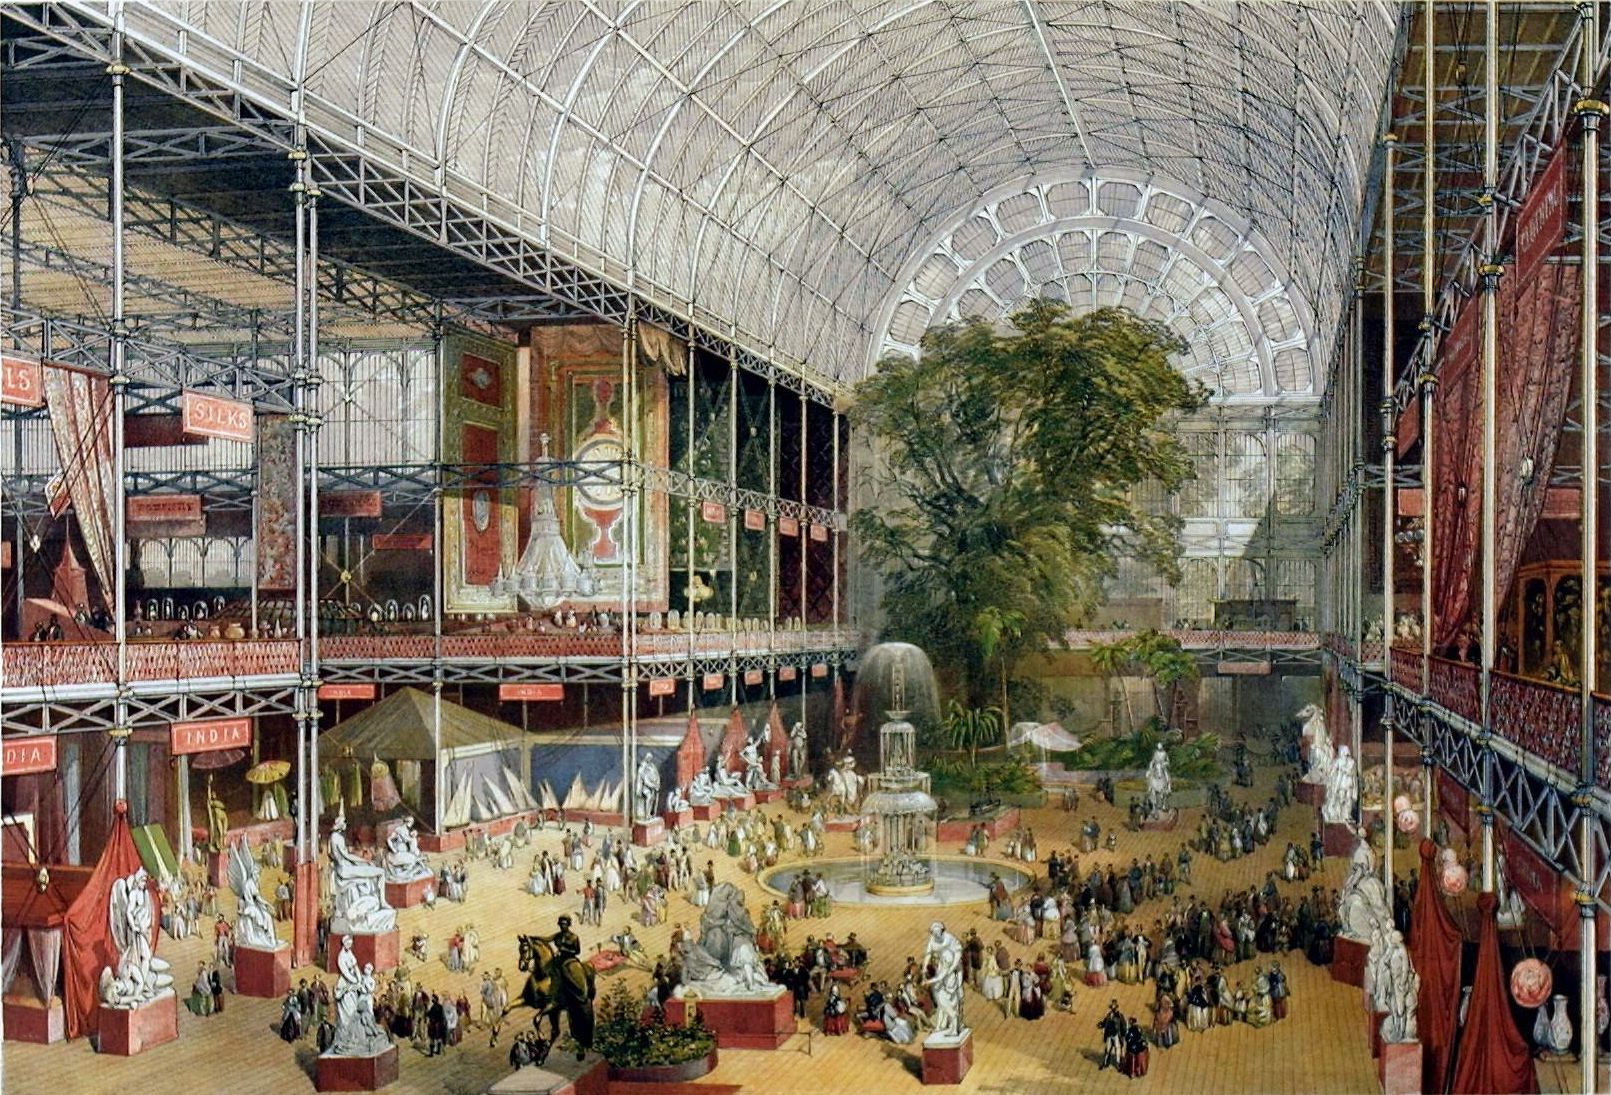 Illustration of the Great Exhibition of 1851.